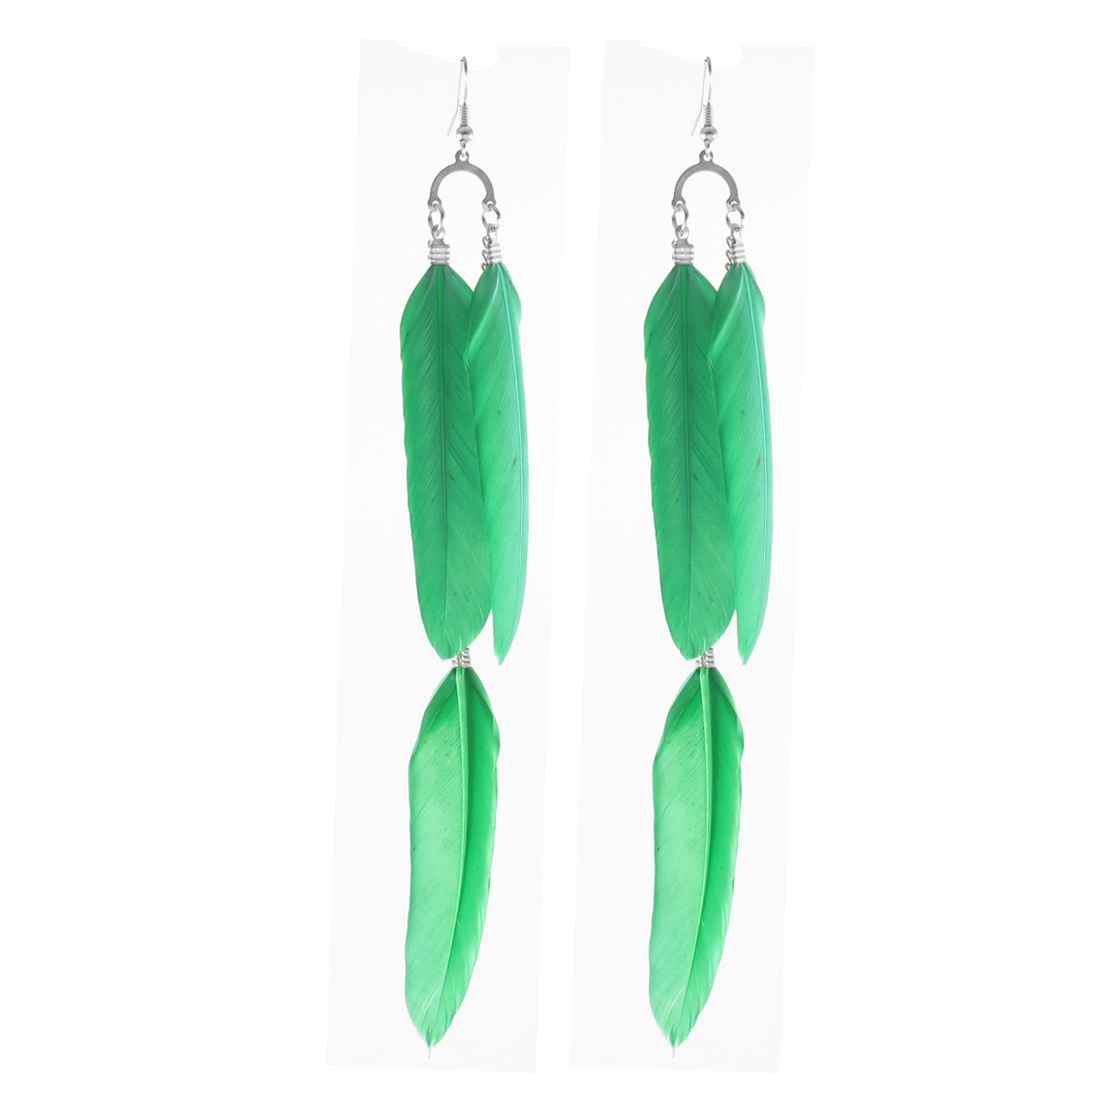 Tassel Chain Green 3 Faux Feather Adorn Hanging Hook Earrings Pair